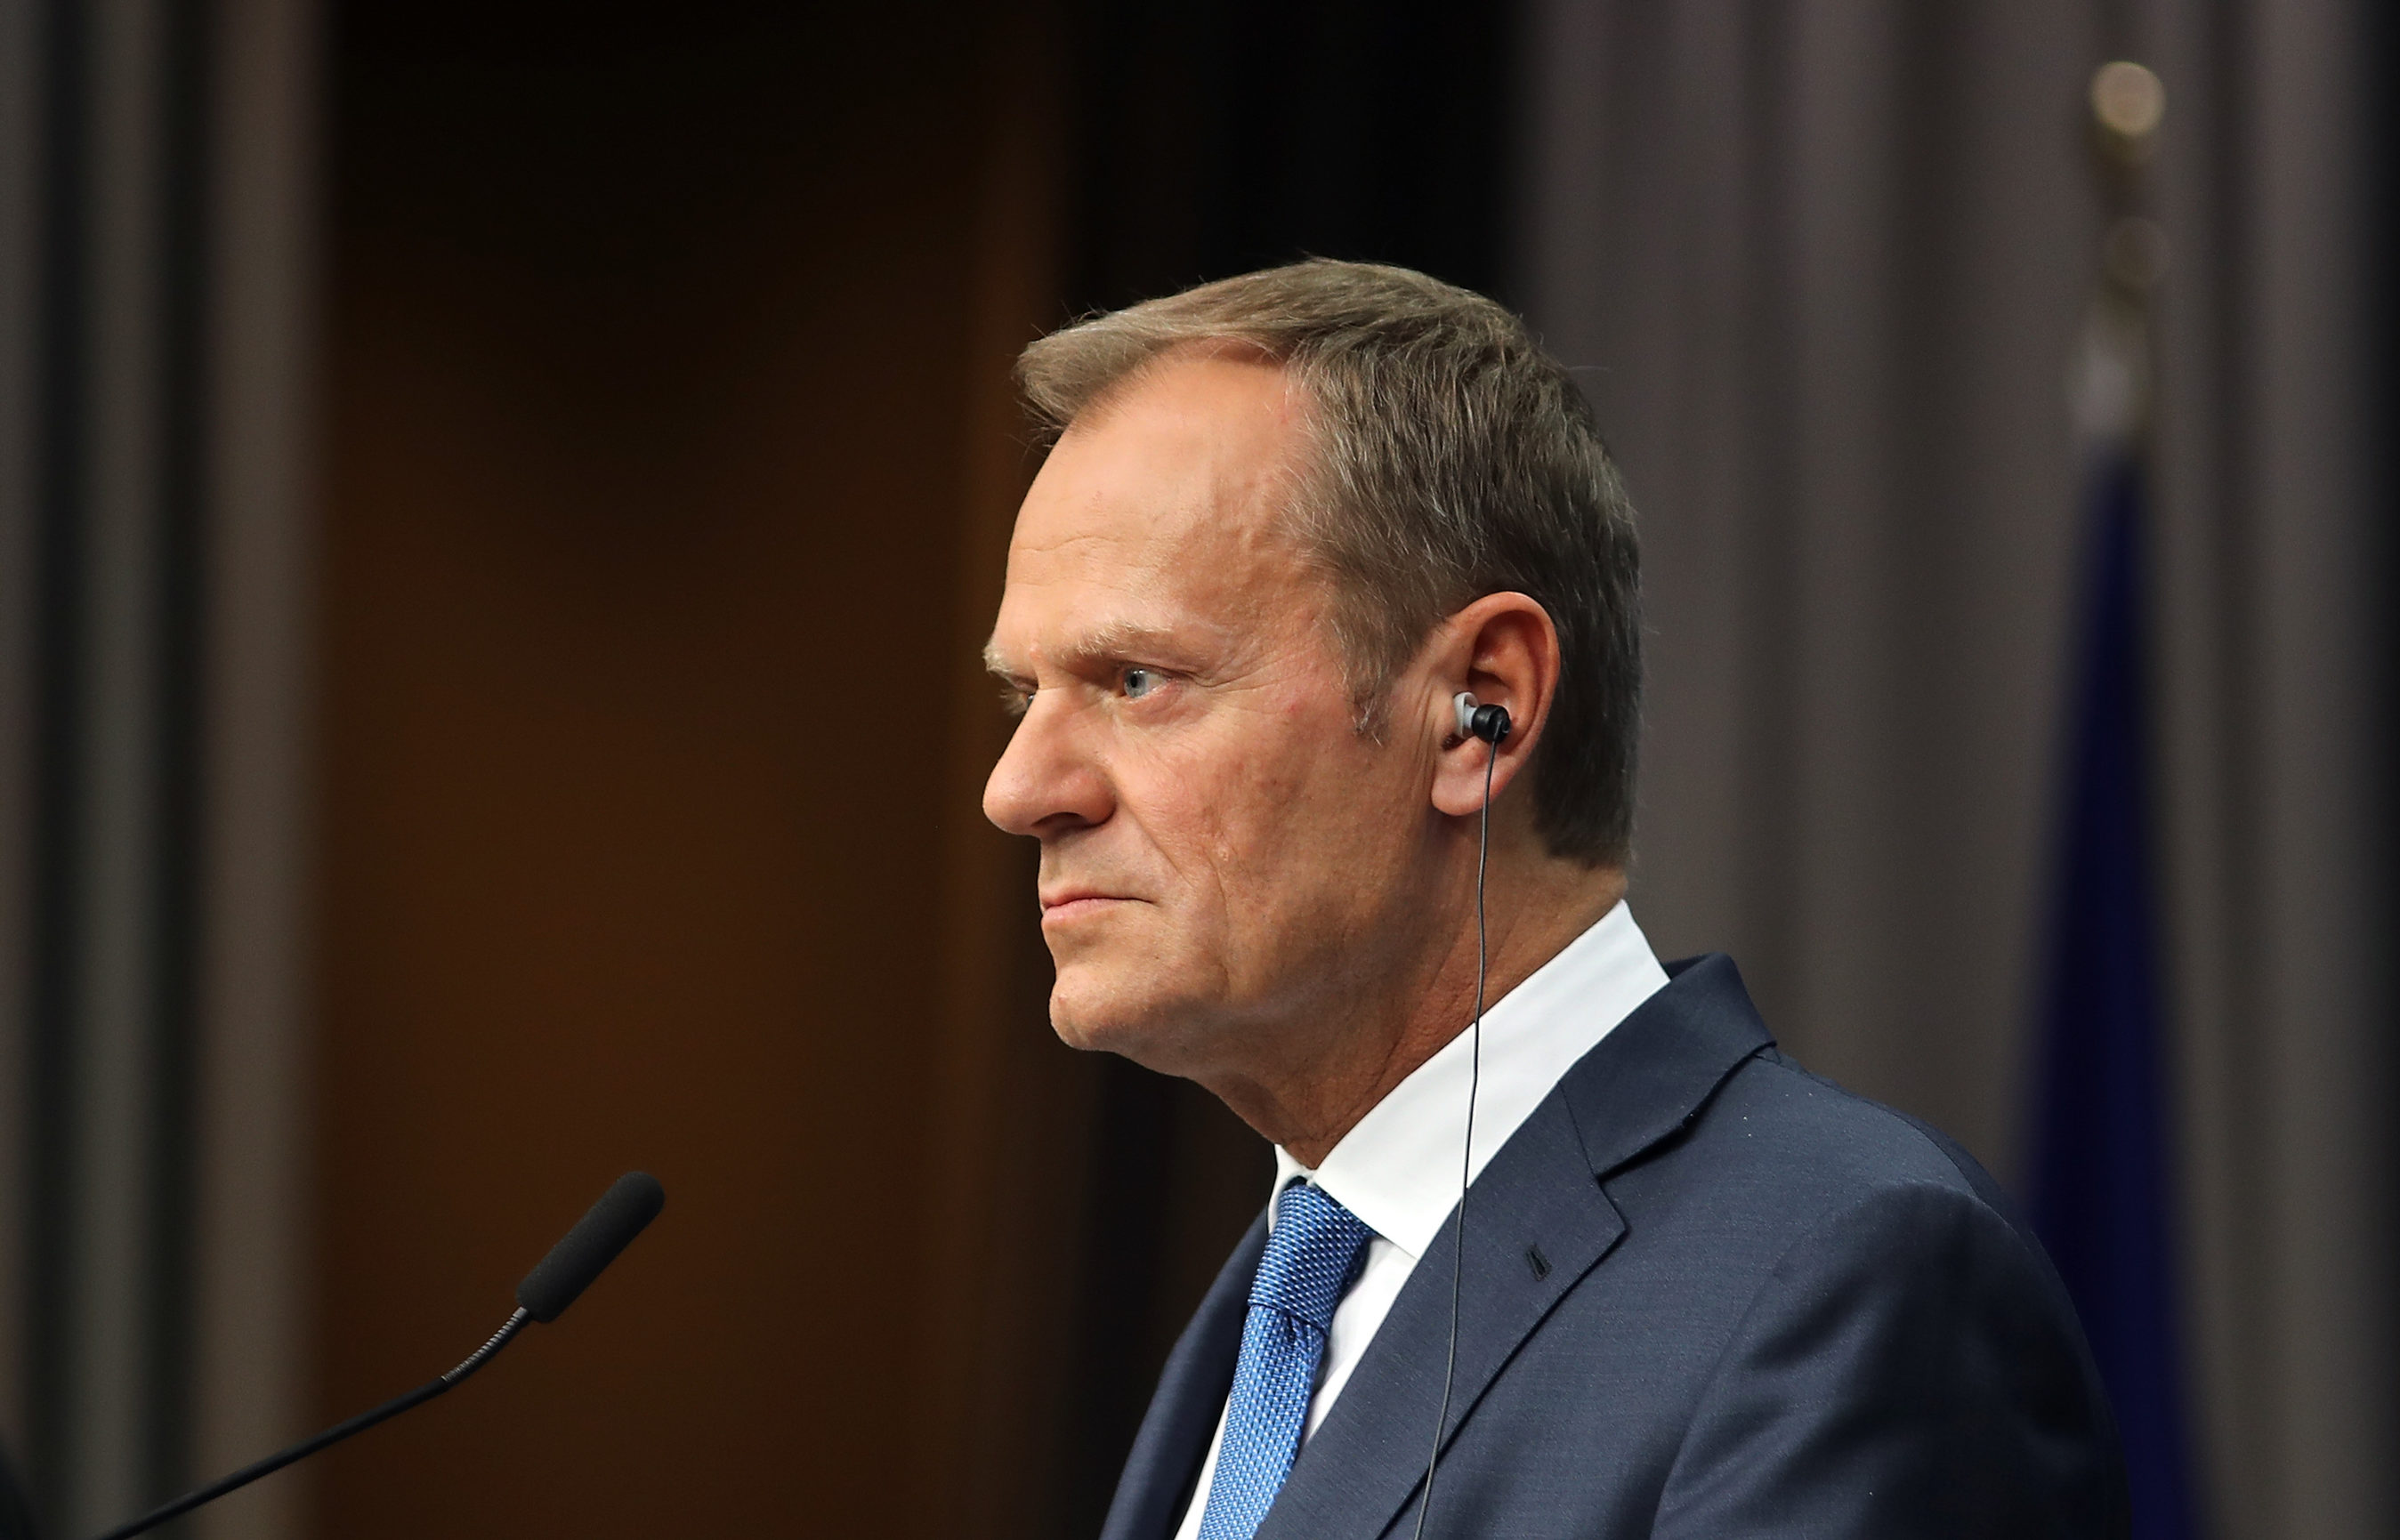 President of the European Council Donald Tusk speaks during a press conference after an EU Council meeting (Dan Kitwood/Getty Images)